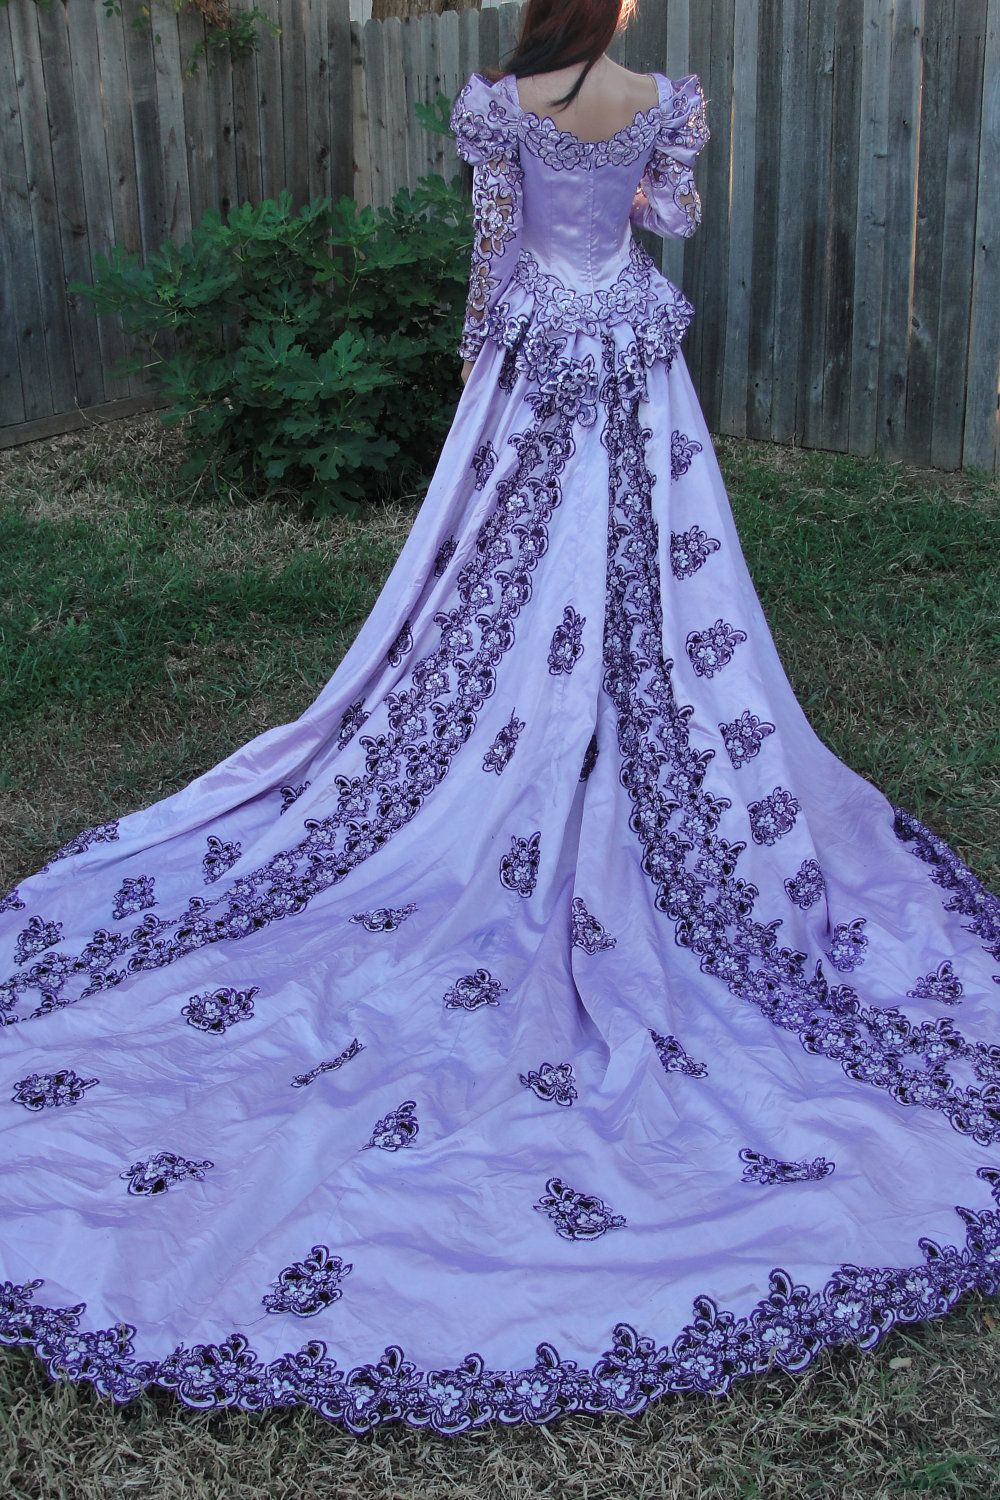 Purple Gothic Hand Dyed Wedding Gown With Cut Out Detail And Cathedral Train 29900